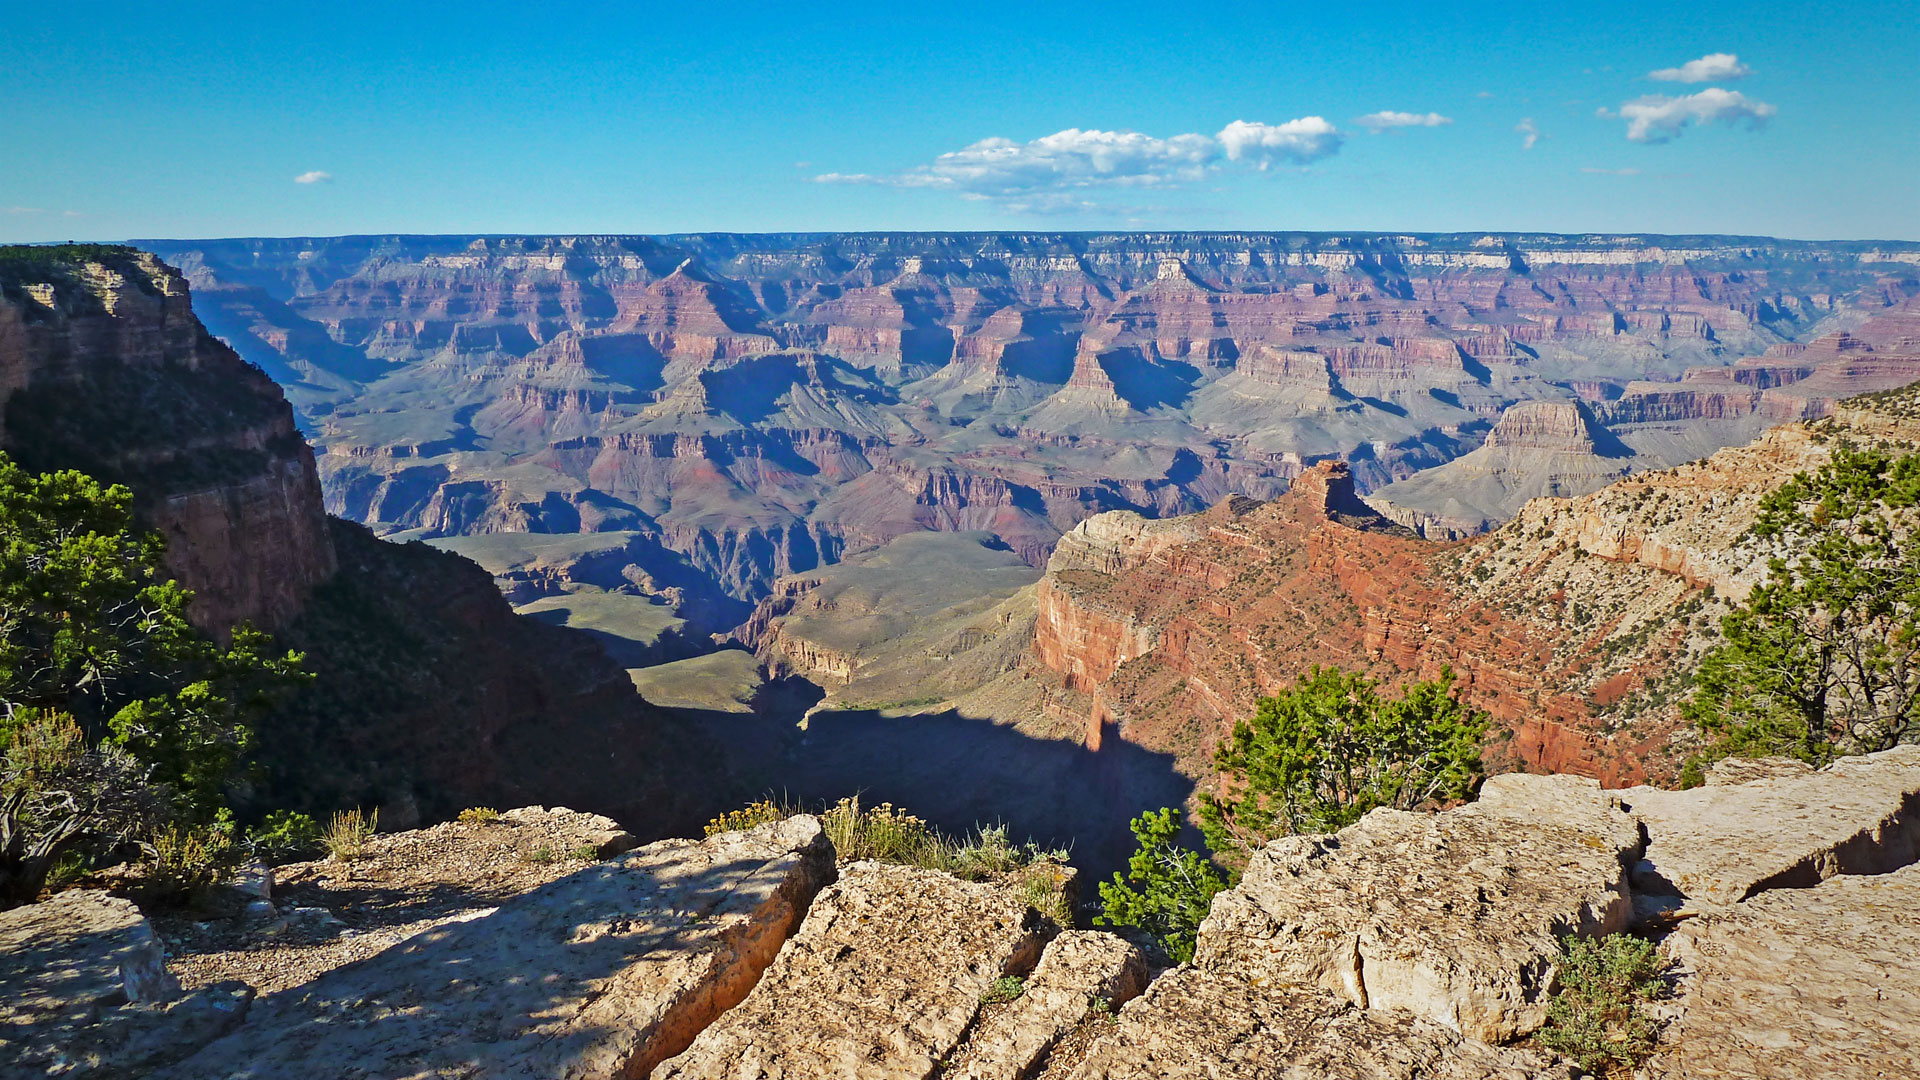 grand canyon gcse geography coursework Geography coursework questions title insurance cover letter critical thinking in nursing powerpoint presentation questions grand canyon gcse geography essays.